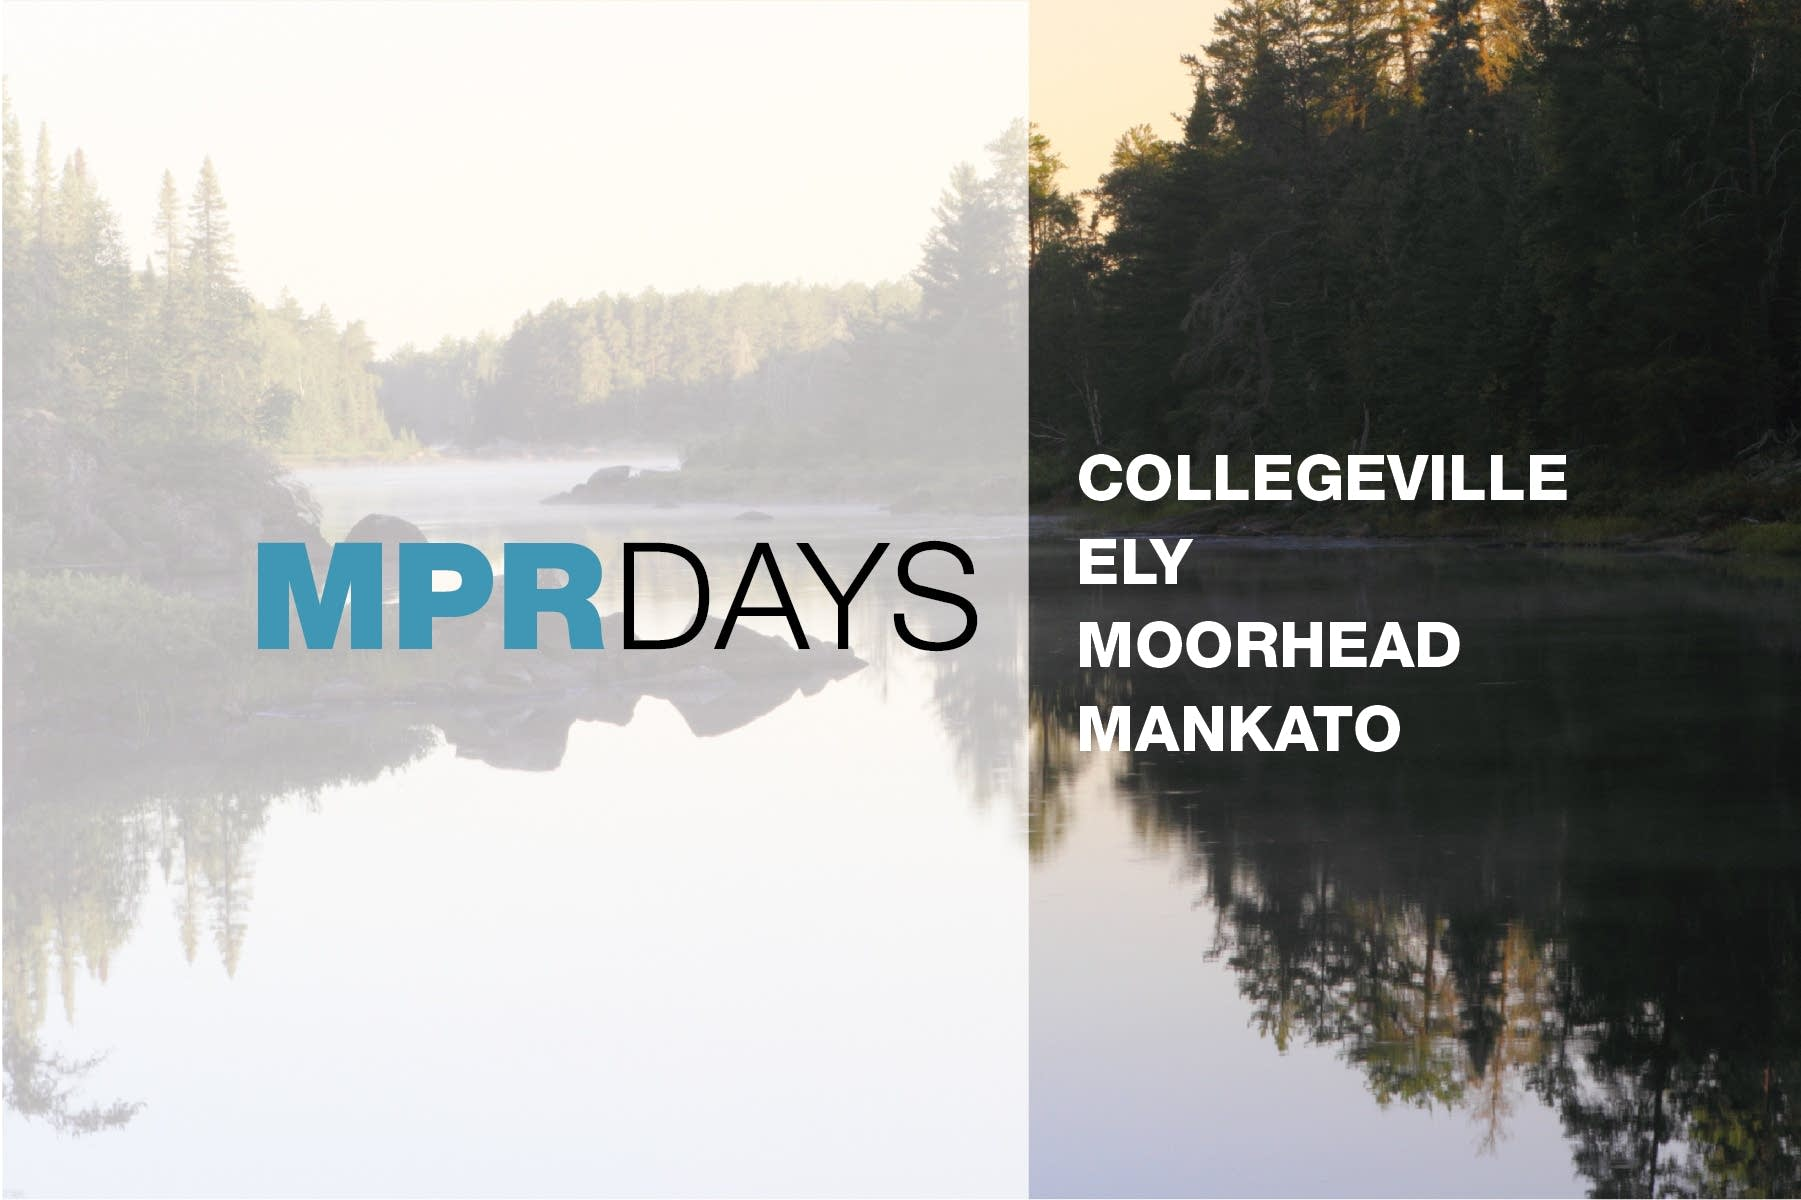 MPR Days around Minnesota for MPR50